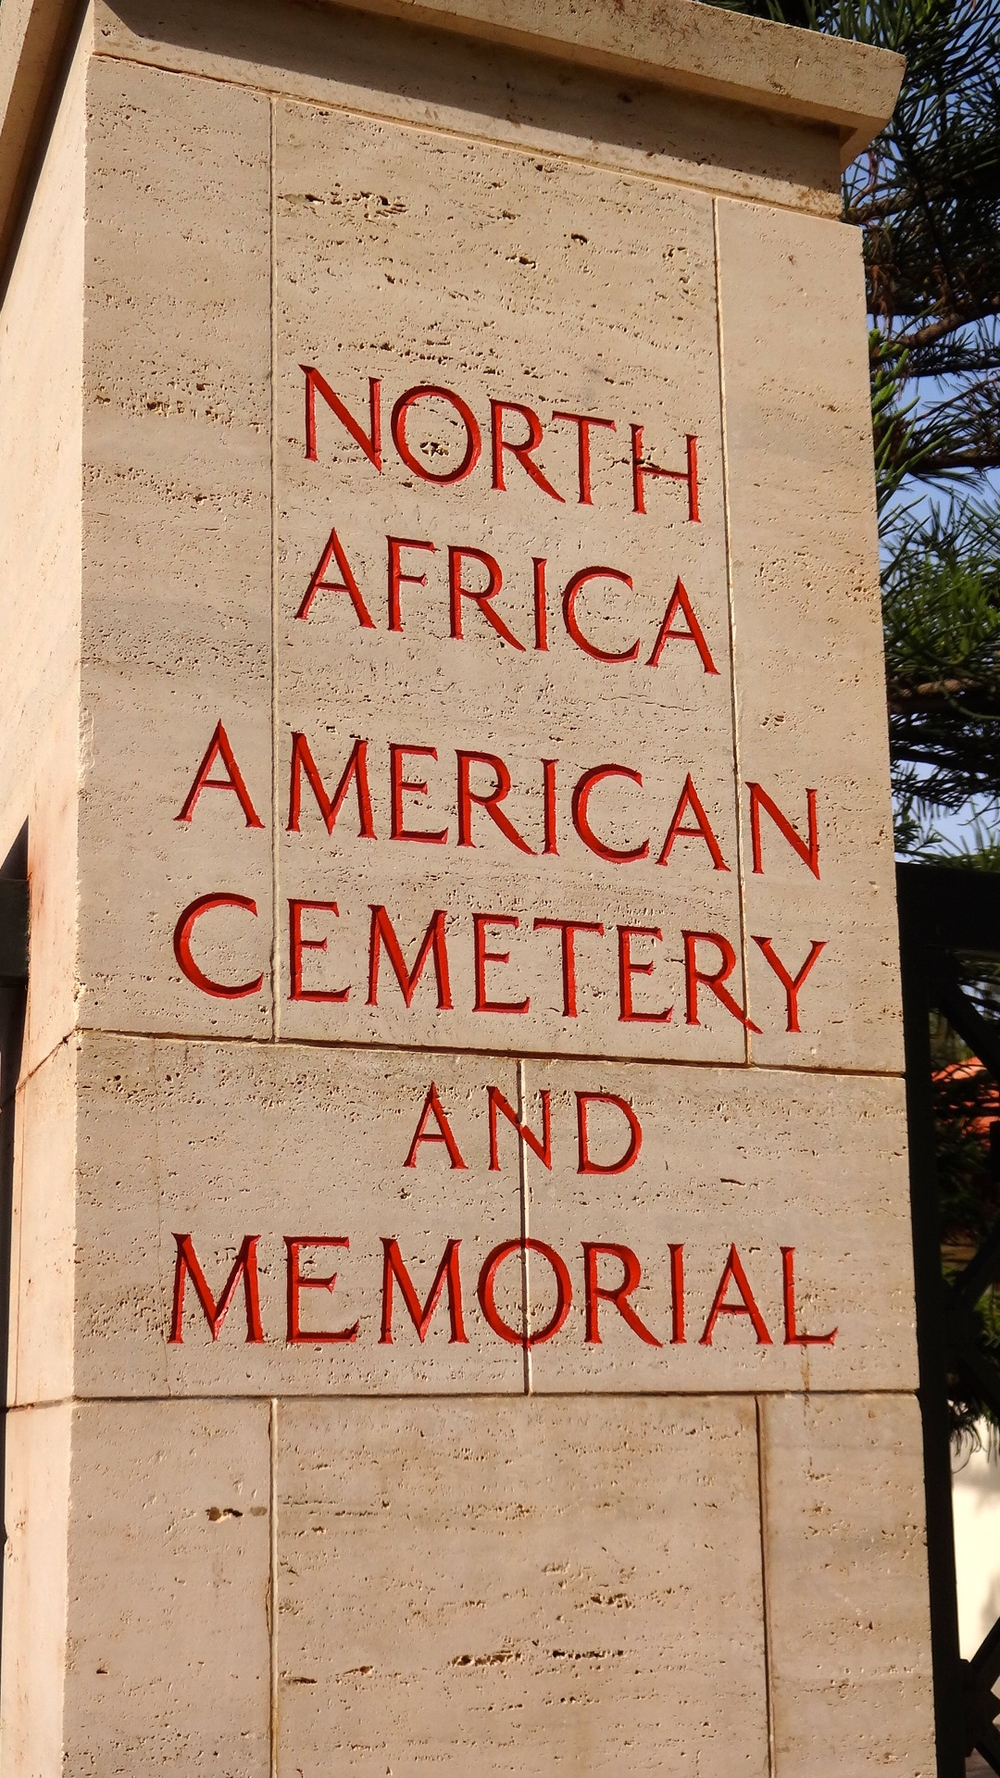 The North Africa American Cemetery and Memorial is the only American military cemetery on the African continent